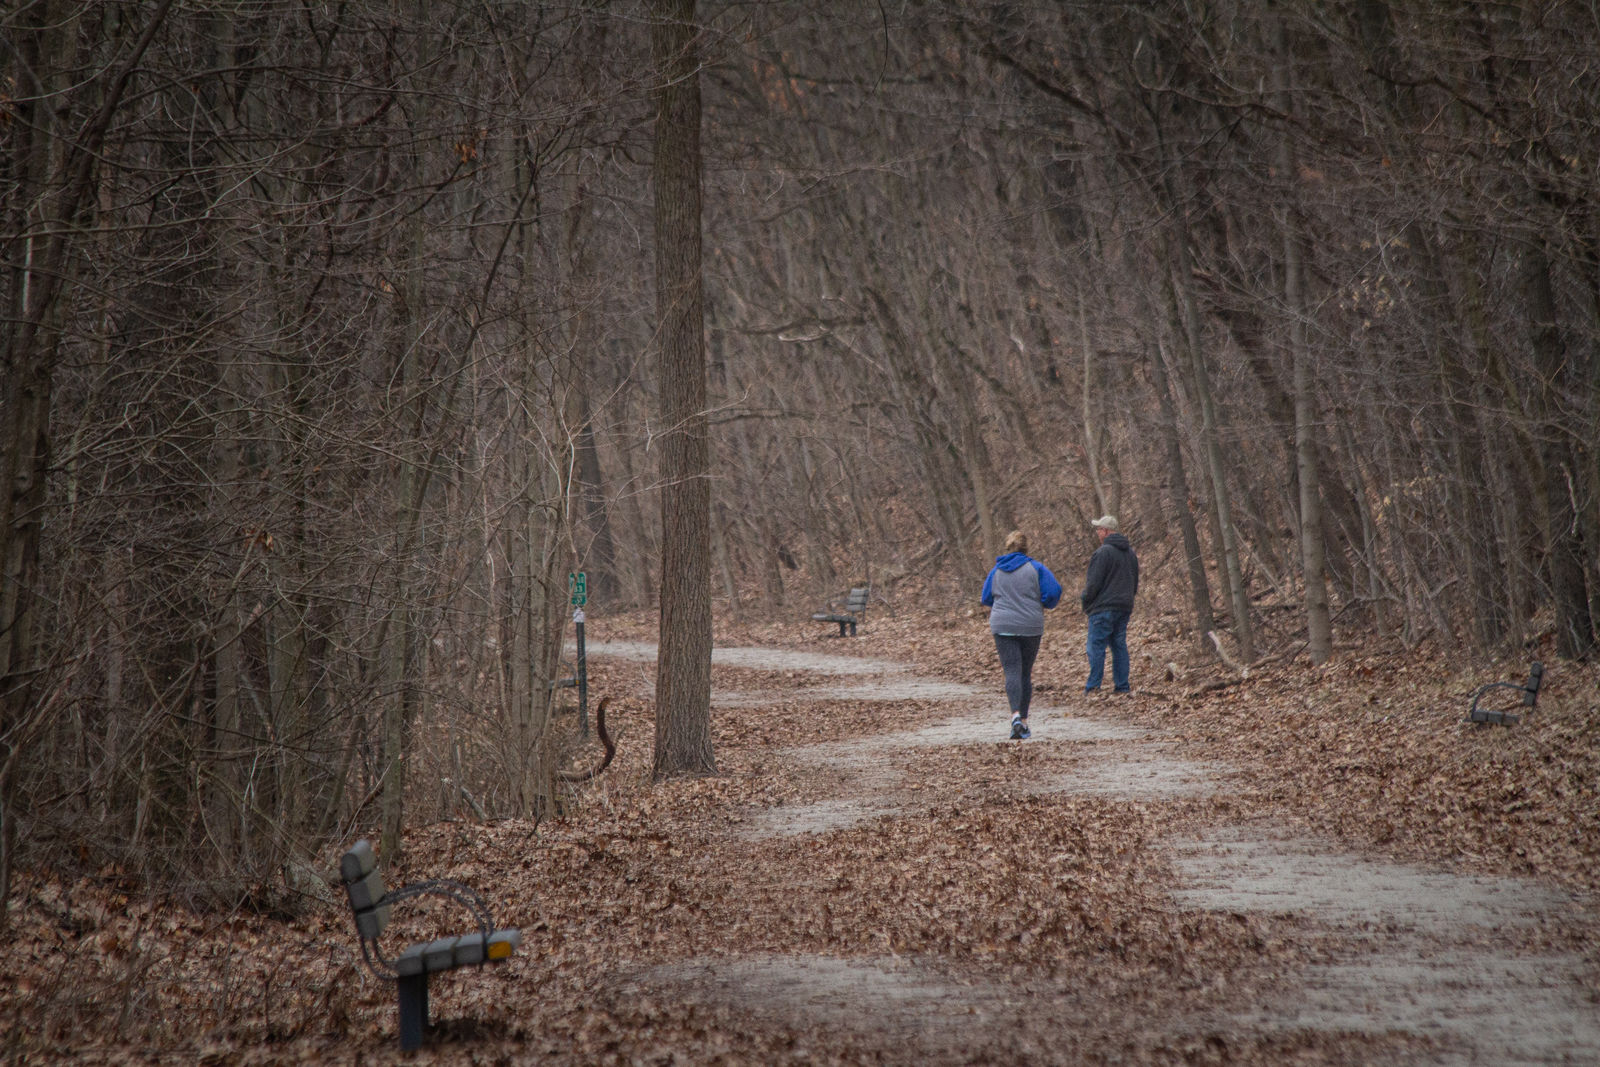 Kalamazoo residents run on the Kal-Haven Trail at Kal-Haven State Park in Kalamazoo on Wednesday, March 25.{ }(WWMT/Sarah White)